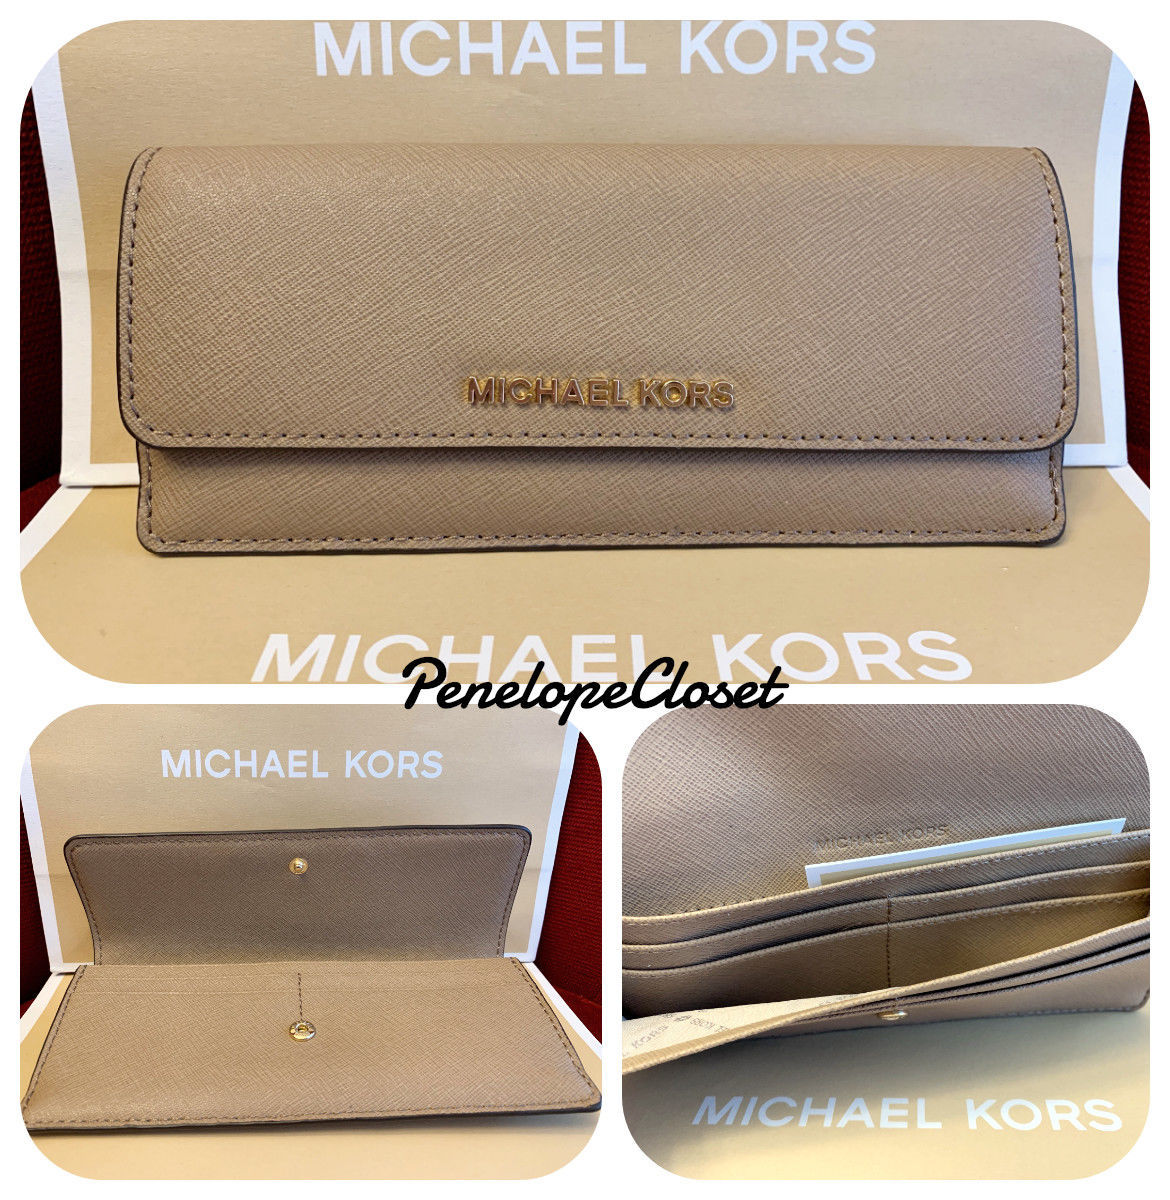 07e73311dfc5 57. 57. Previous. NWT MICHAEL KORS JET SET TRAVEL SAFFIANO LEATHER FLAT  WALLET IN DARK KHAKI. NWT MICHAEL KORS ...